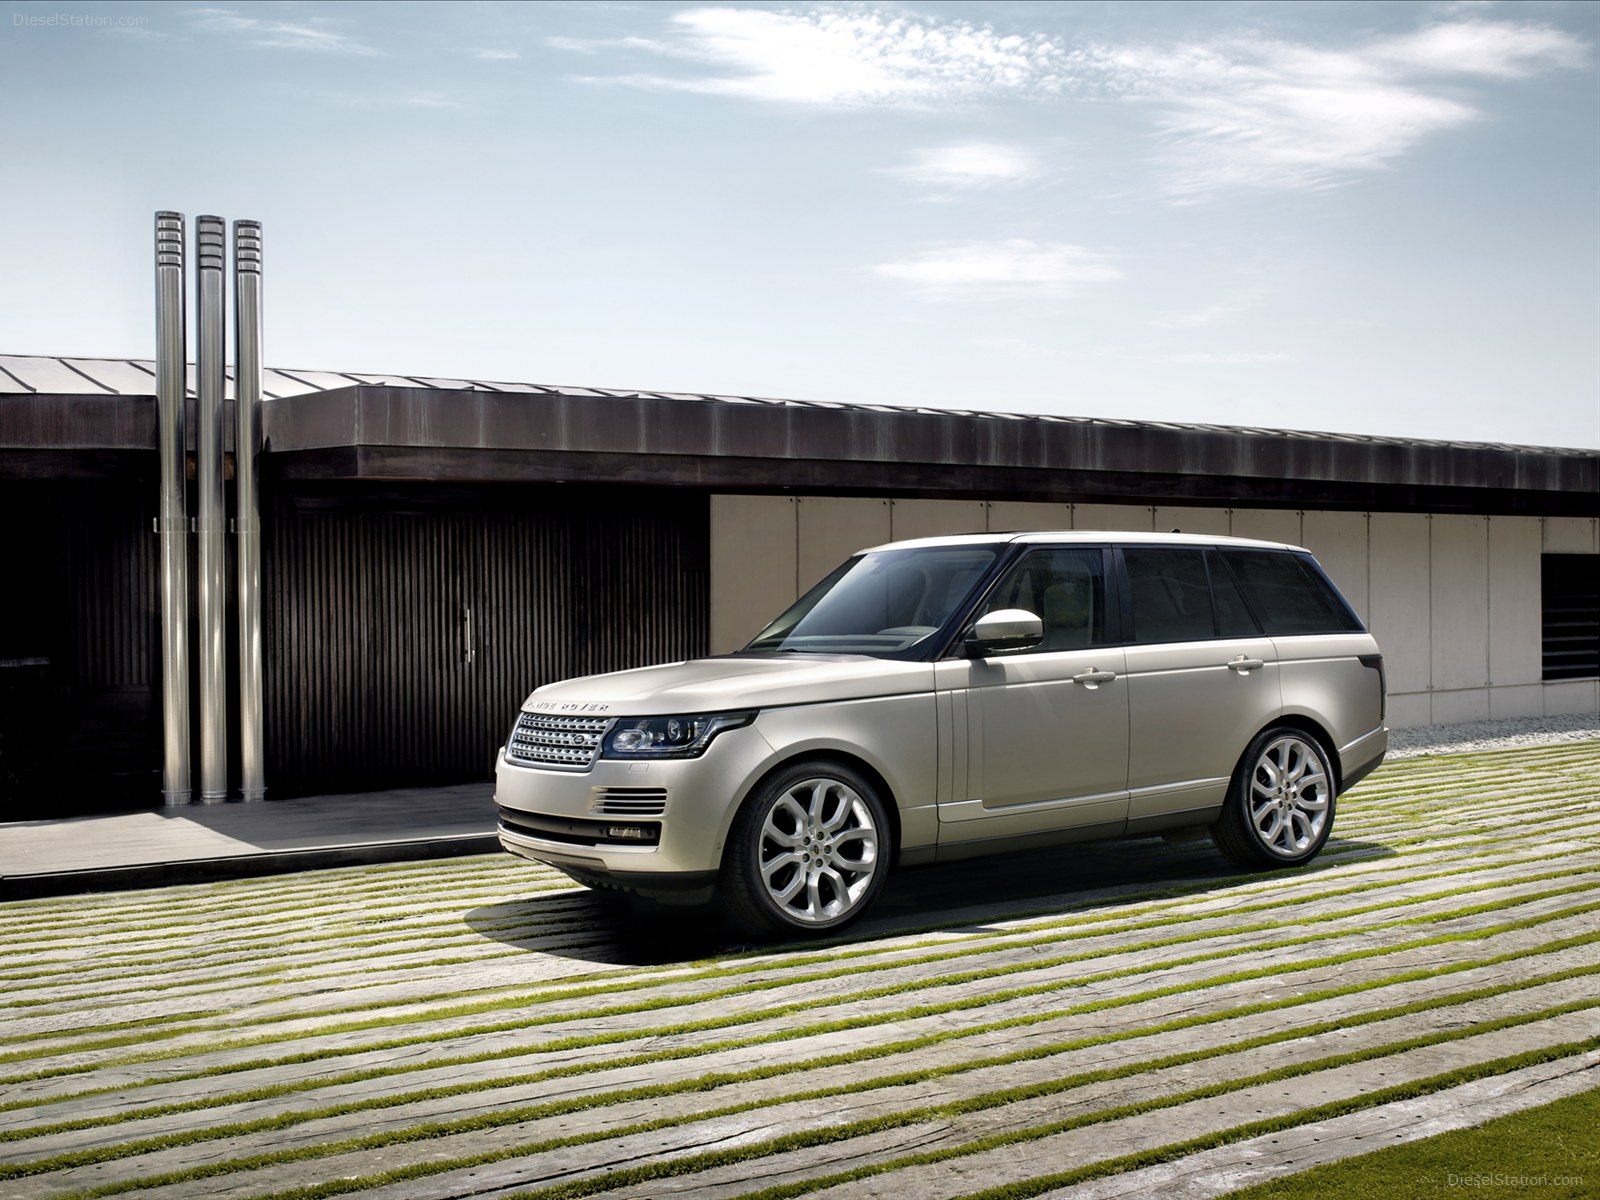 Land rover rang rover photo - 4